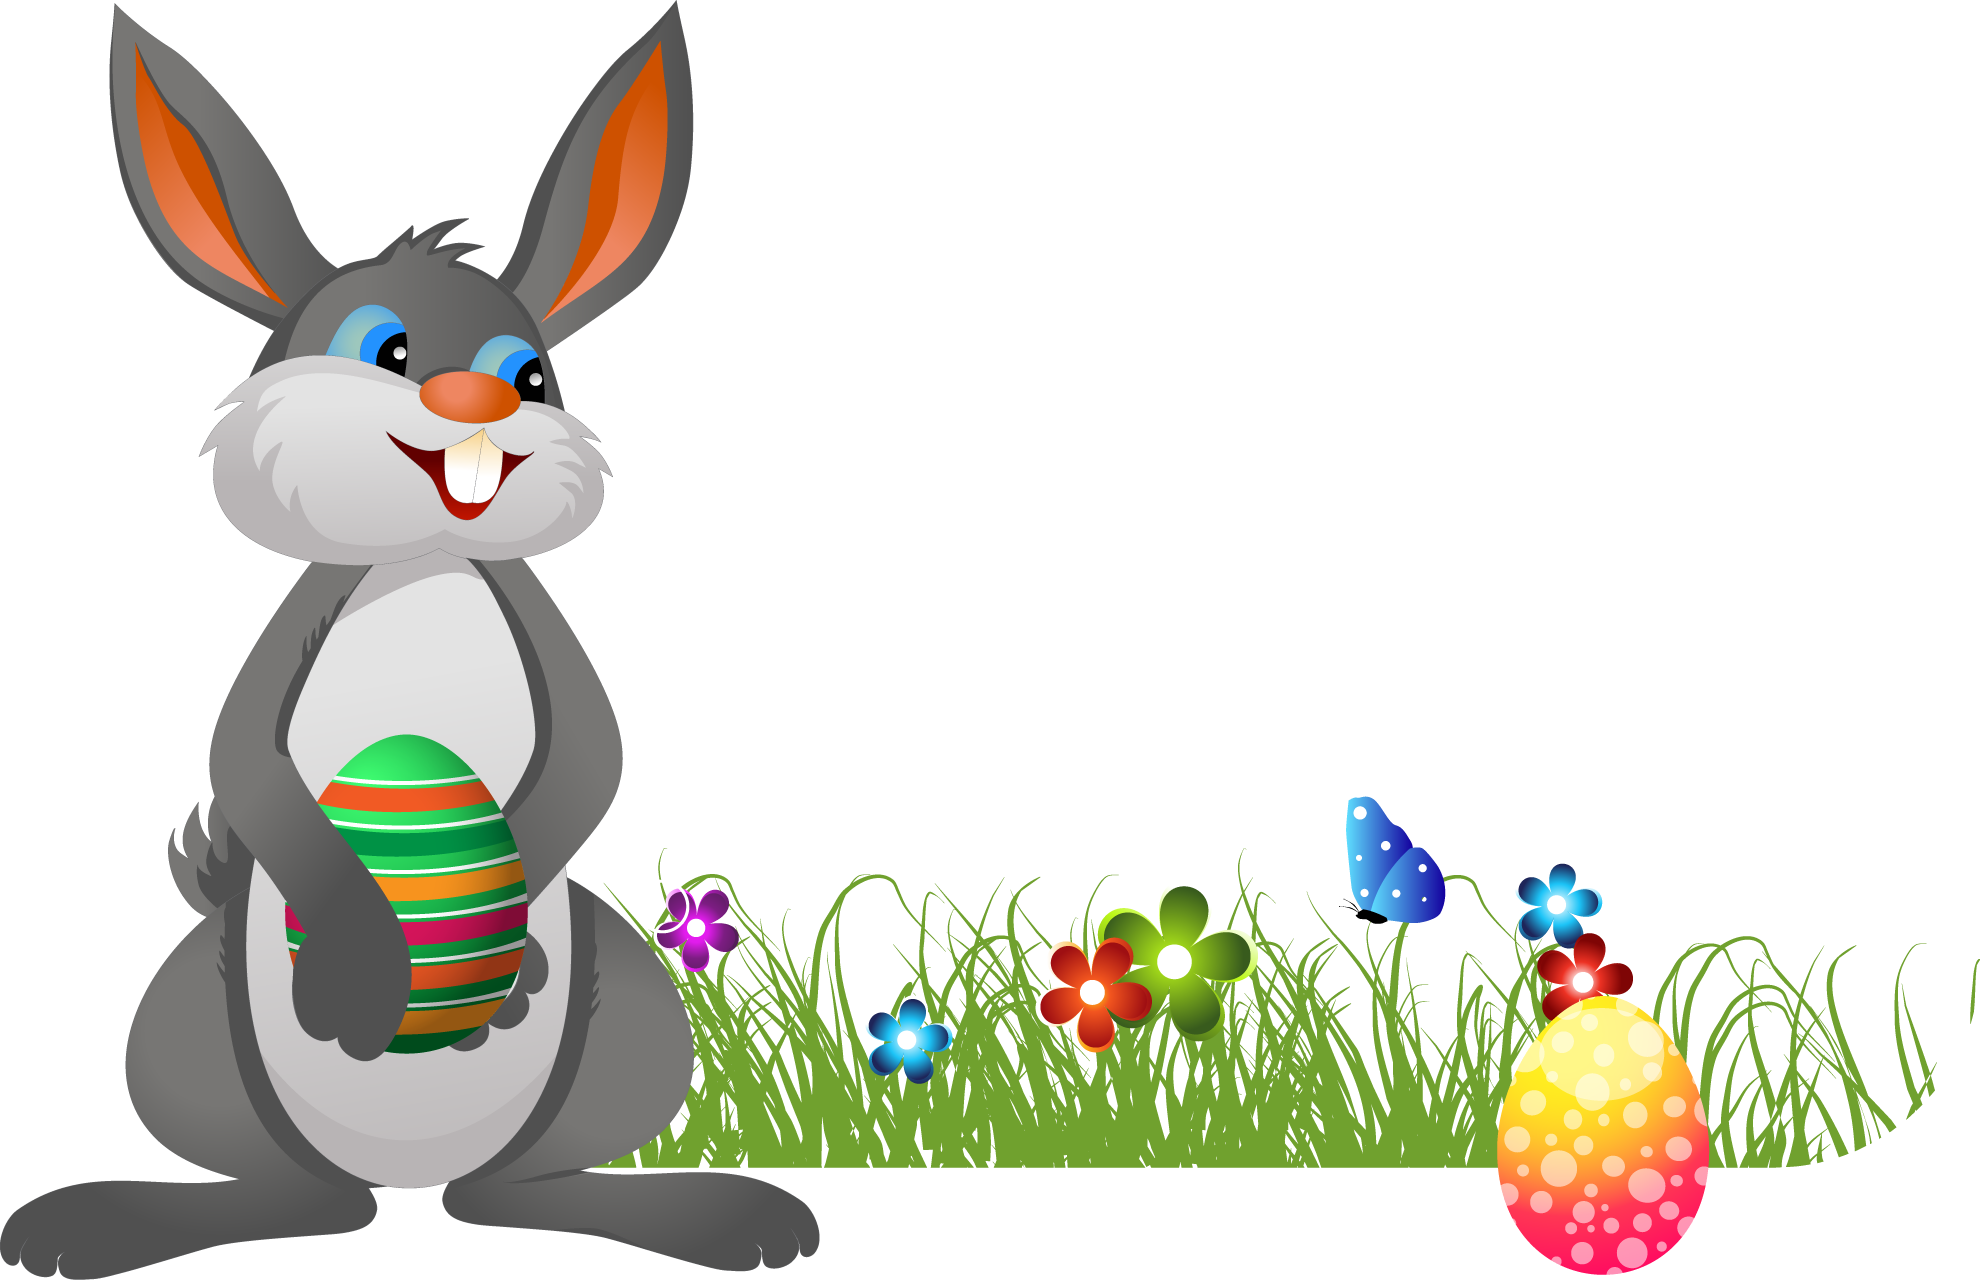 Download Easter Bunny HQ PNG Image